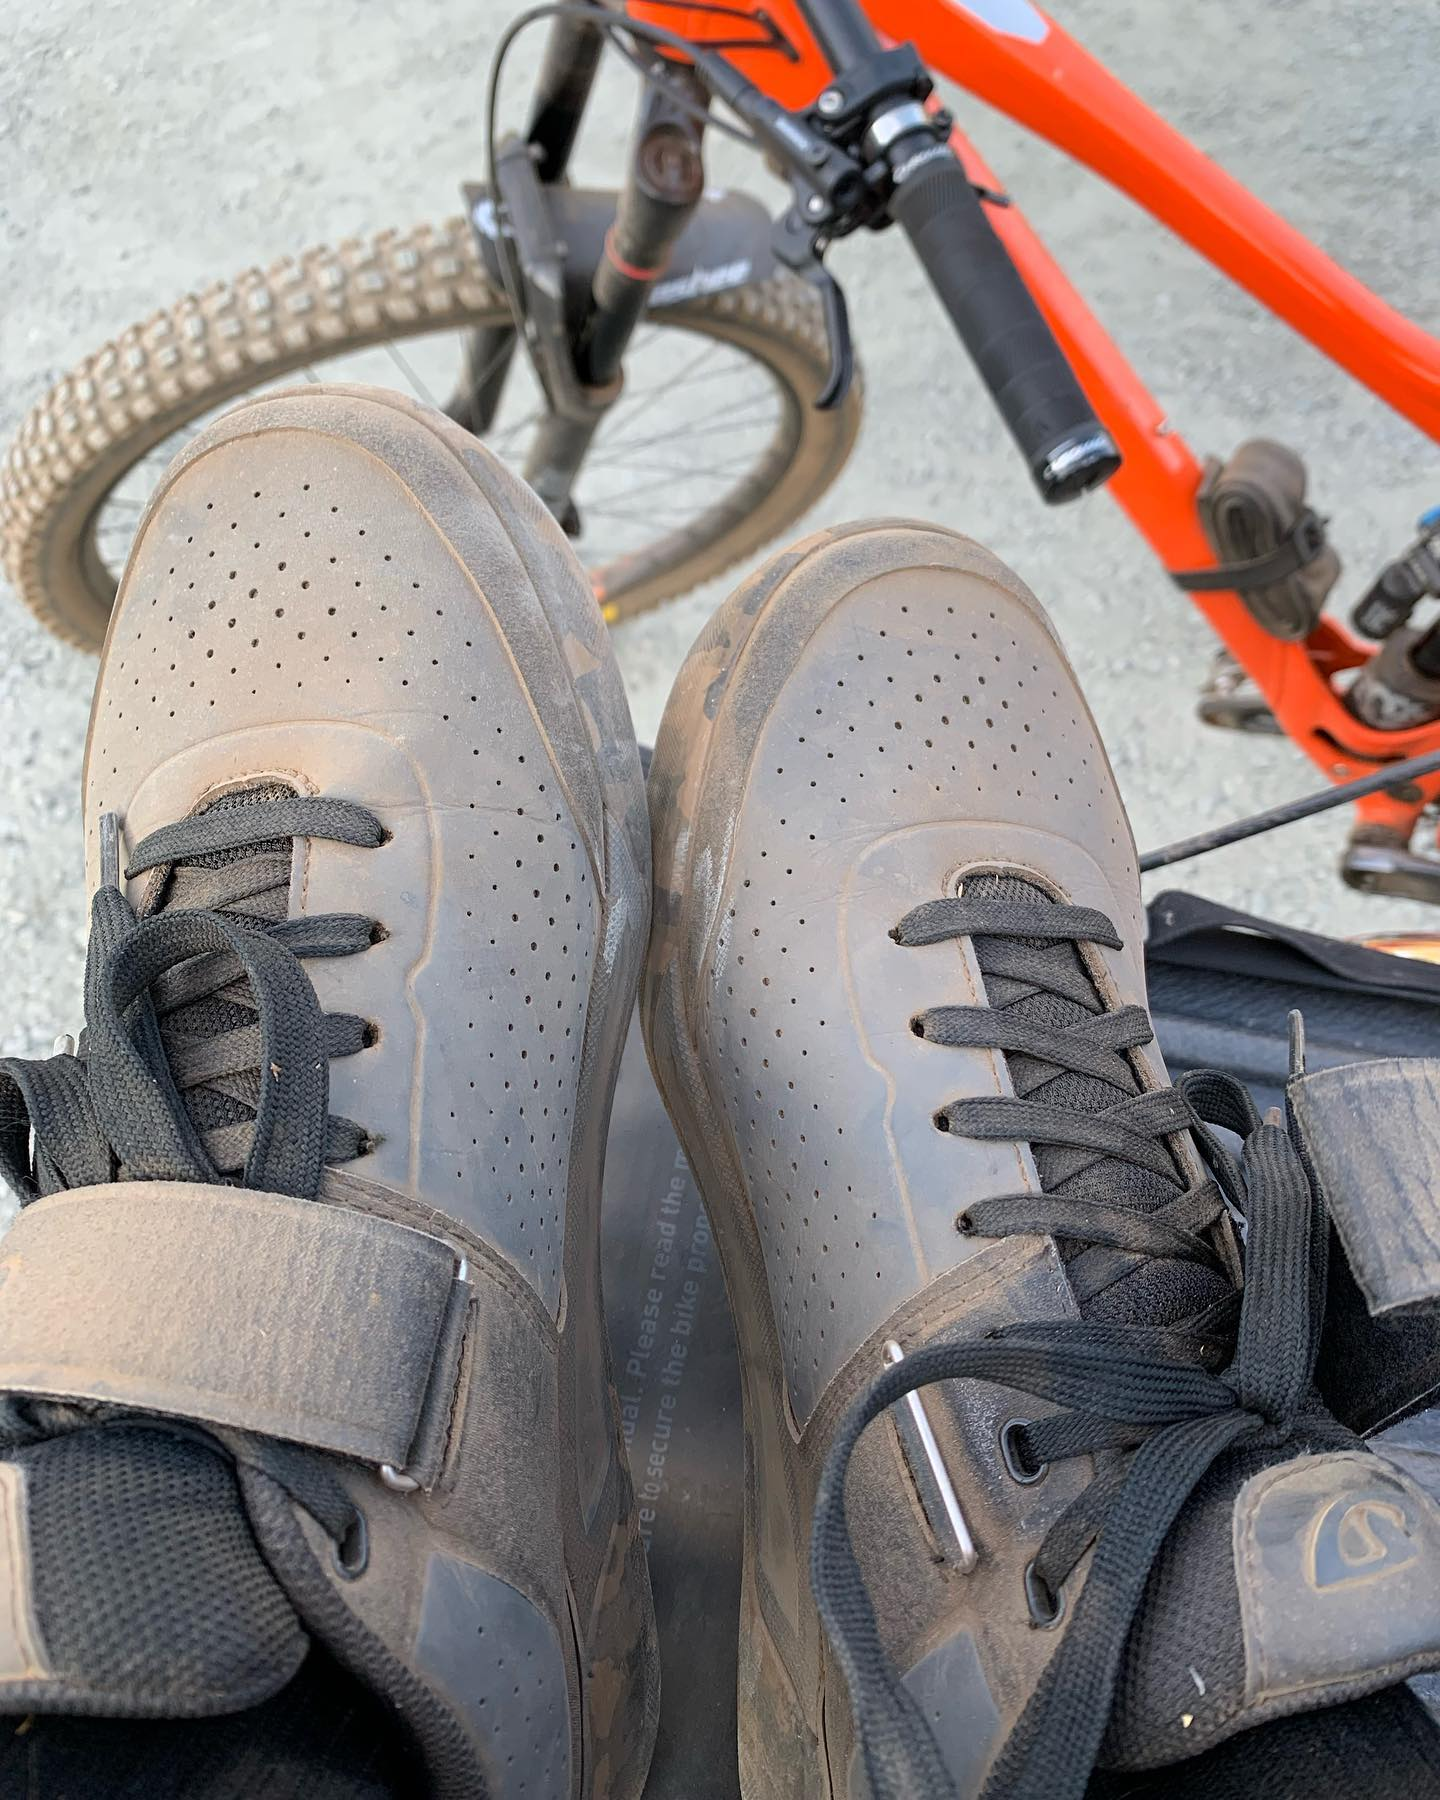 🤔Might need to change my moniker to dusty laces if this keeps up. #mtbvi #yyj #mountainbiking #bikesarefun #dustytrails